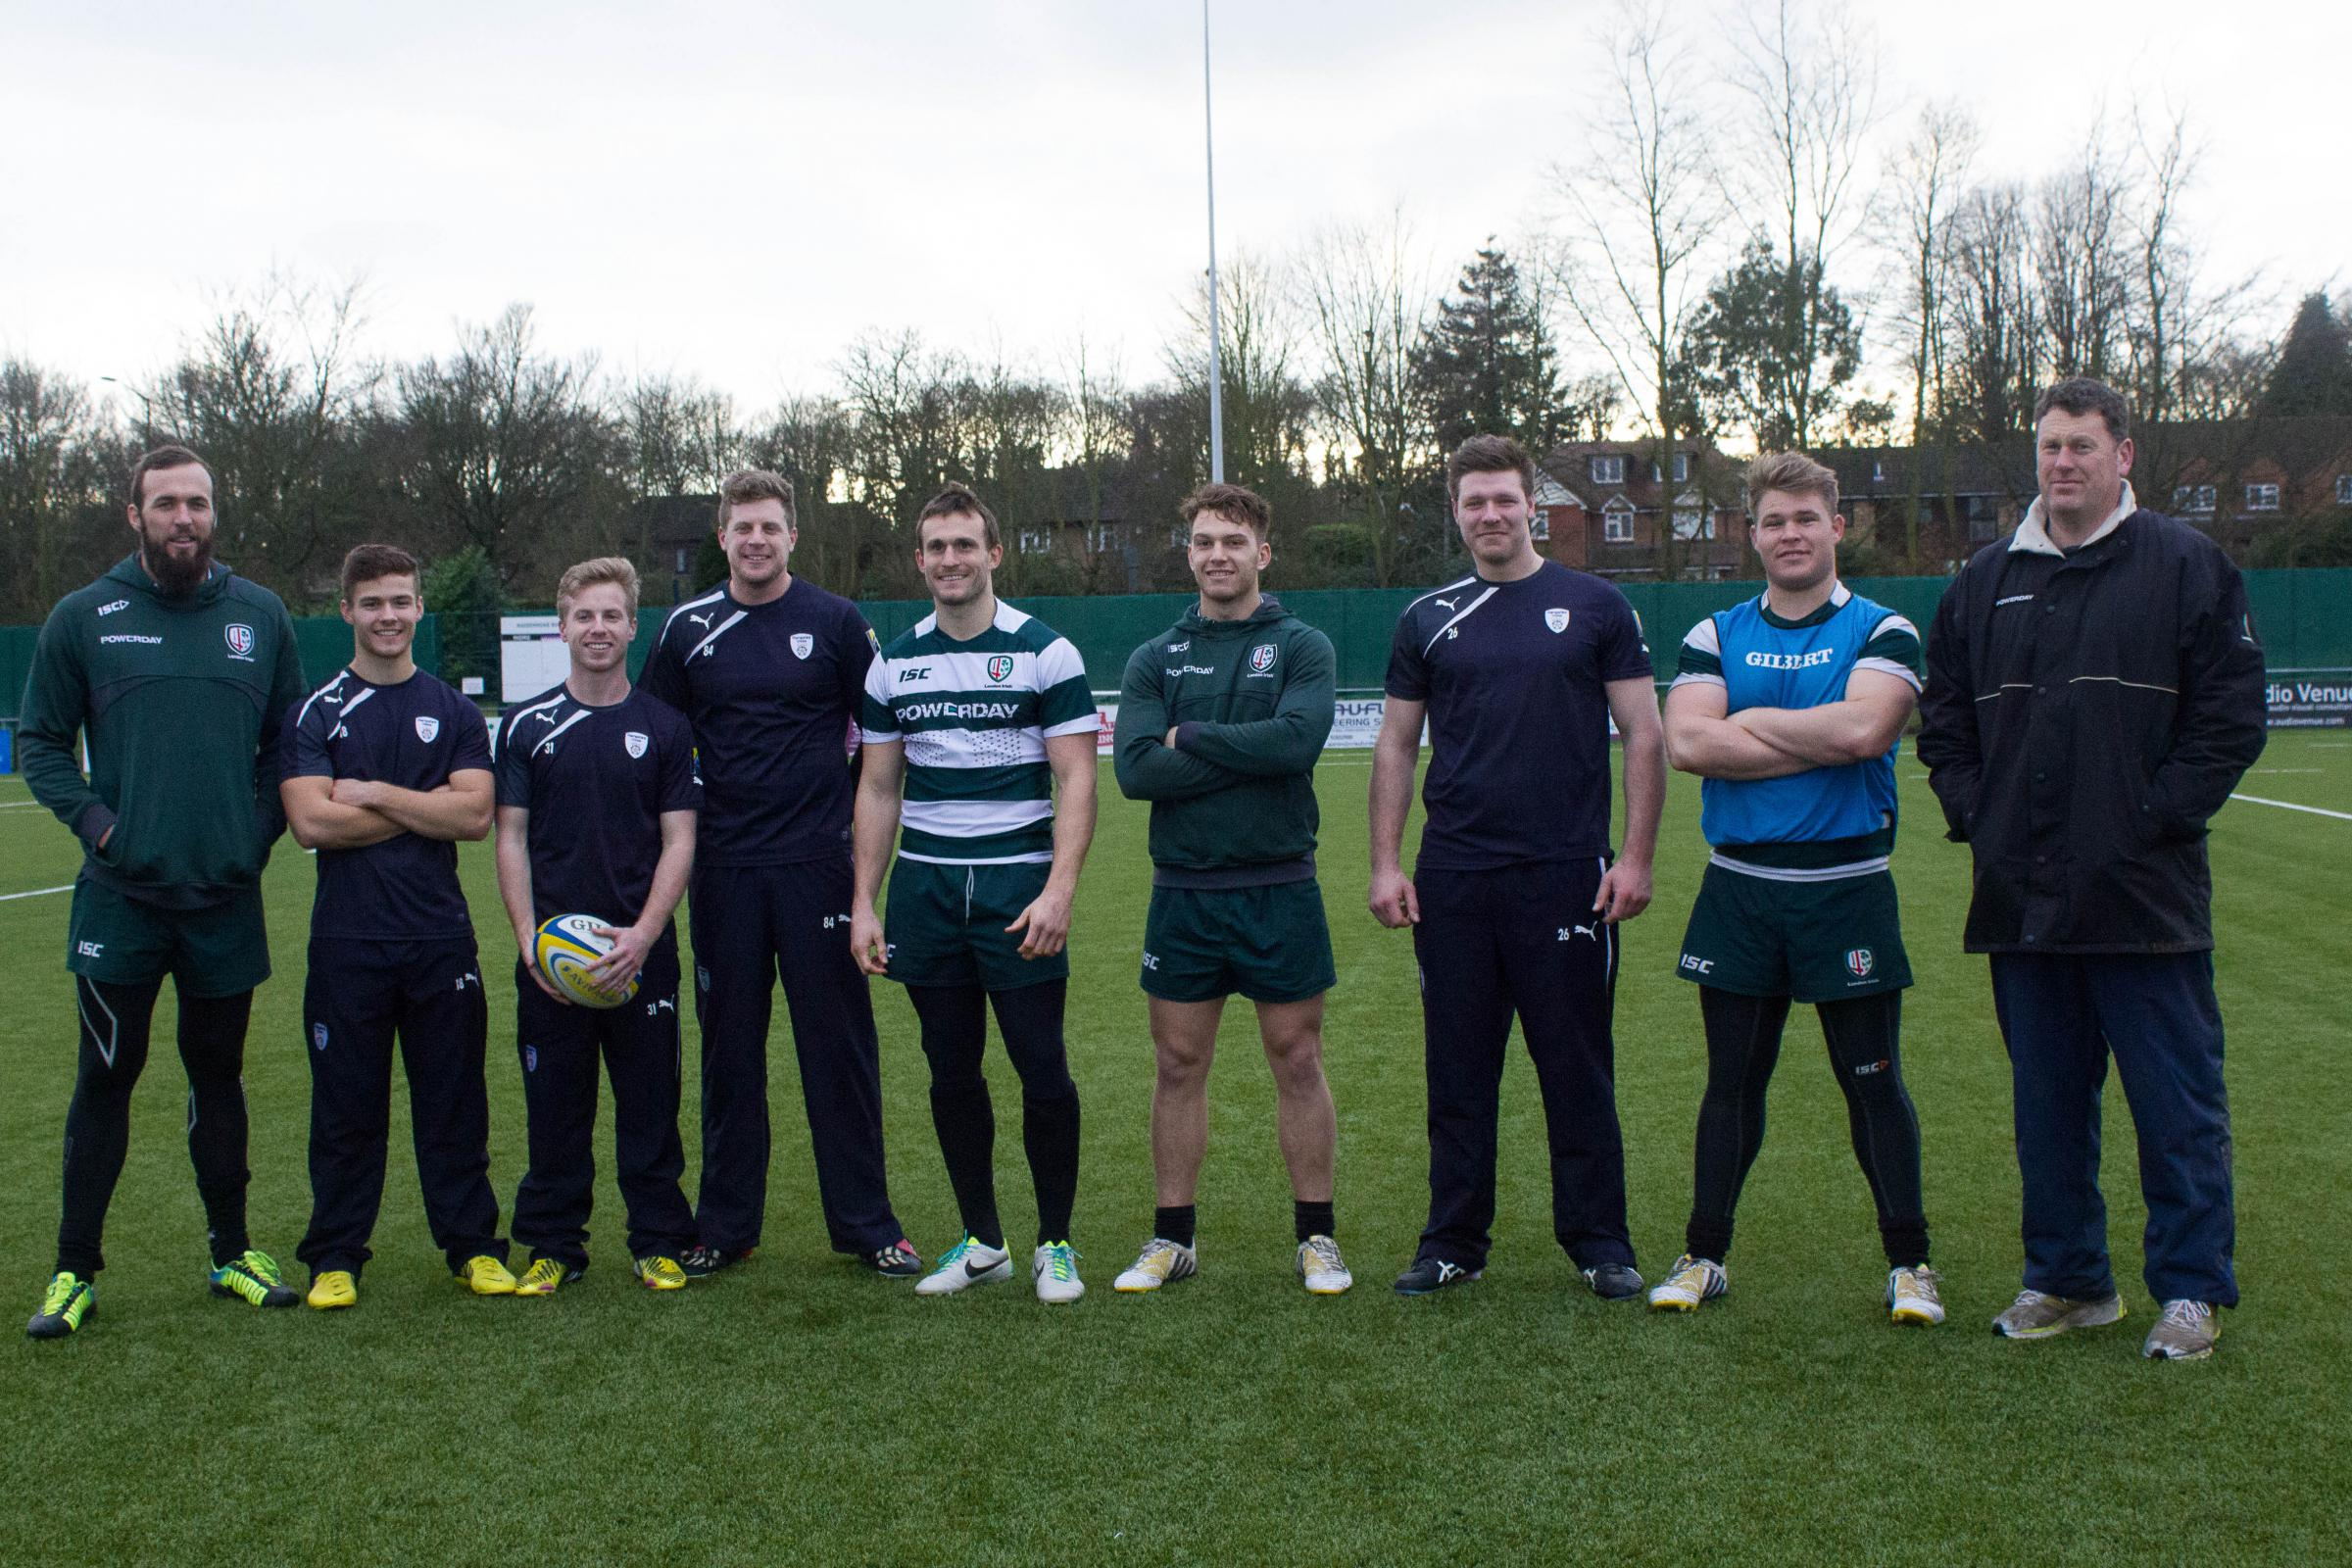 Hants announce London Irish partnership